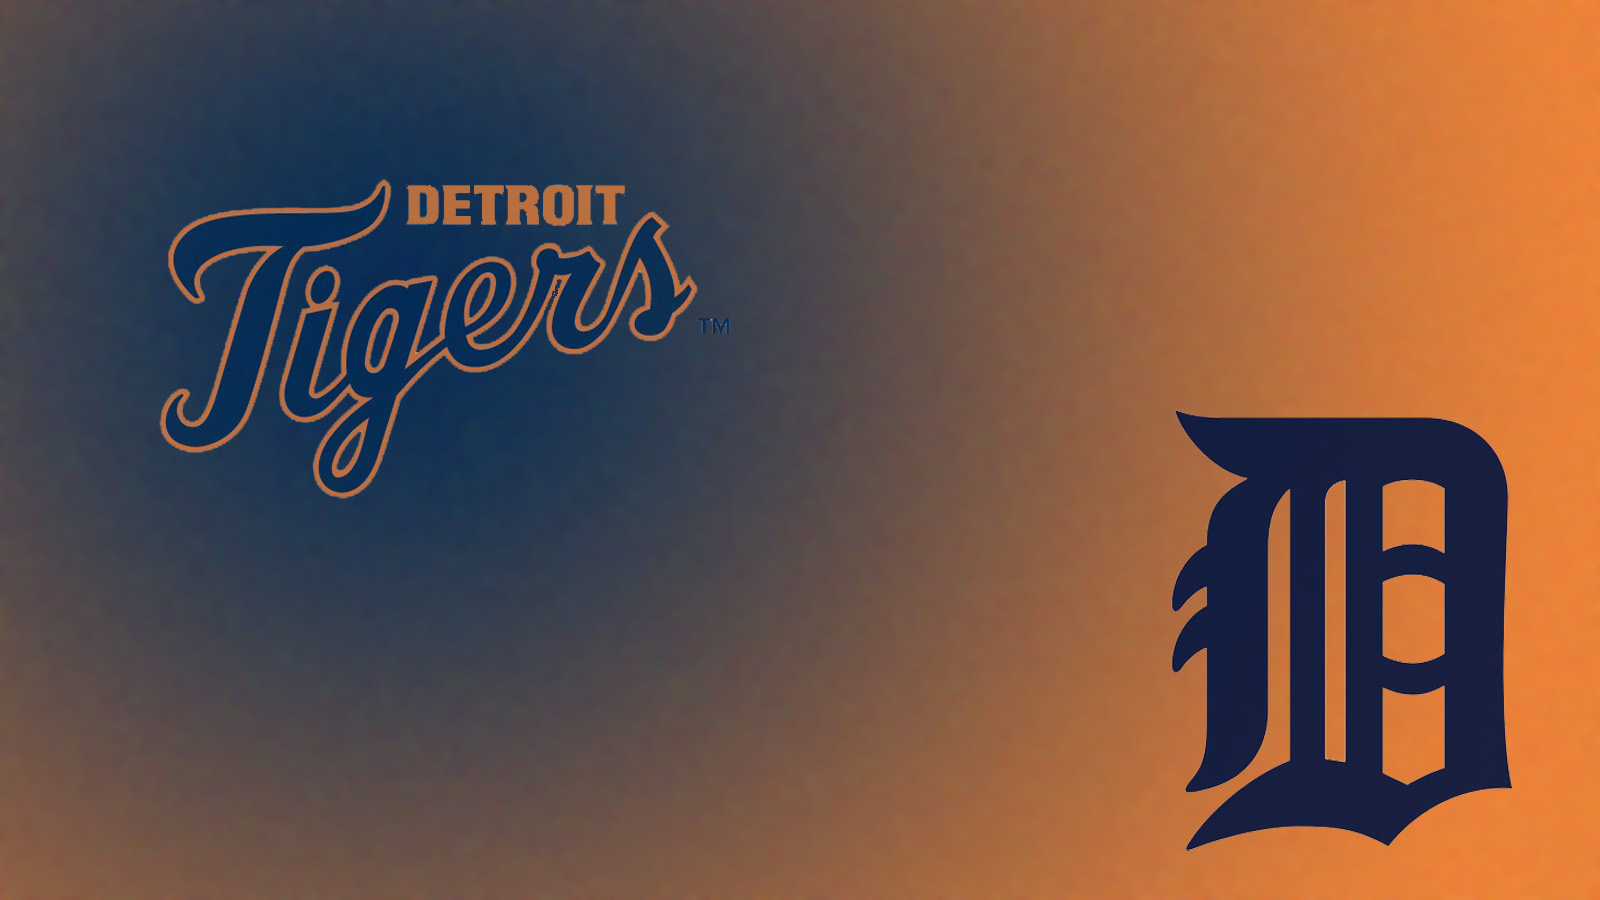 1600x900 - Detroit Tigers Wallpapers 16